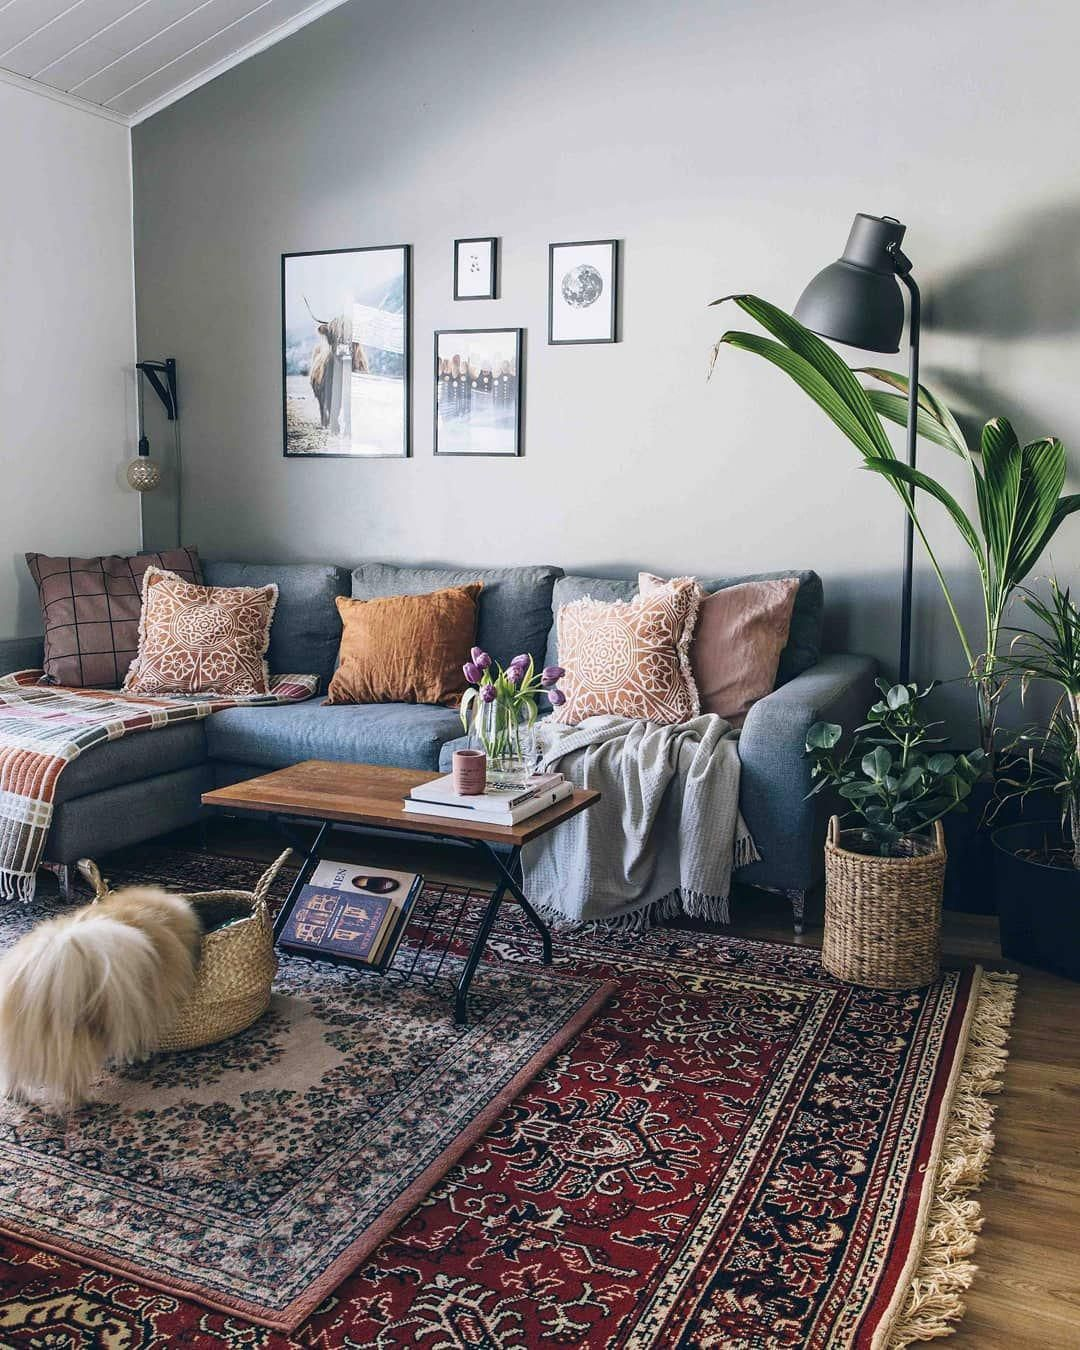 Vintage Hygge Home By Essi On Instagram Okey I Couldn T Live Without Our Red Rug So Here Is Rugs In Living Room Red Rug Living Room Oriental Rug Living Room